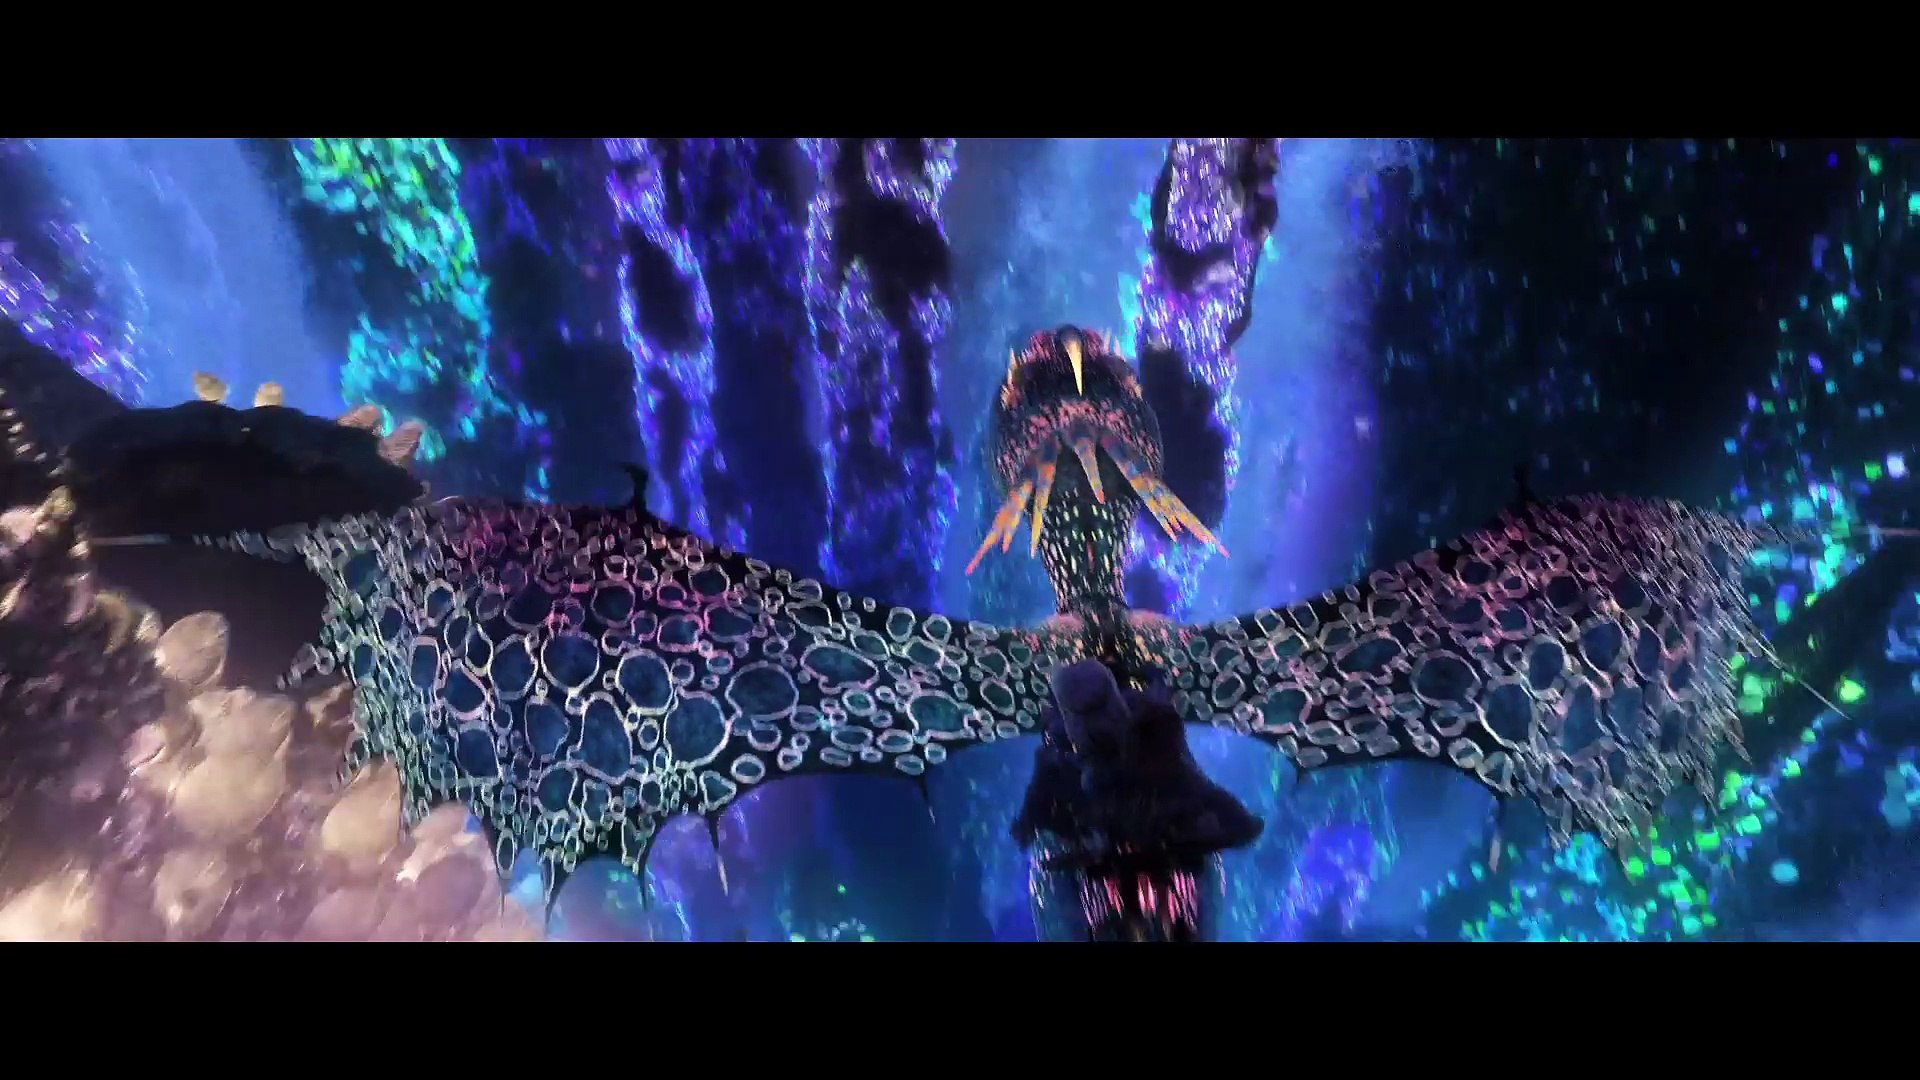 How To Train Your Dragon 3 Trailer 2